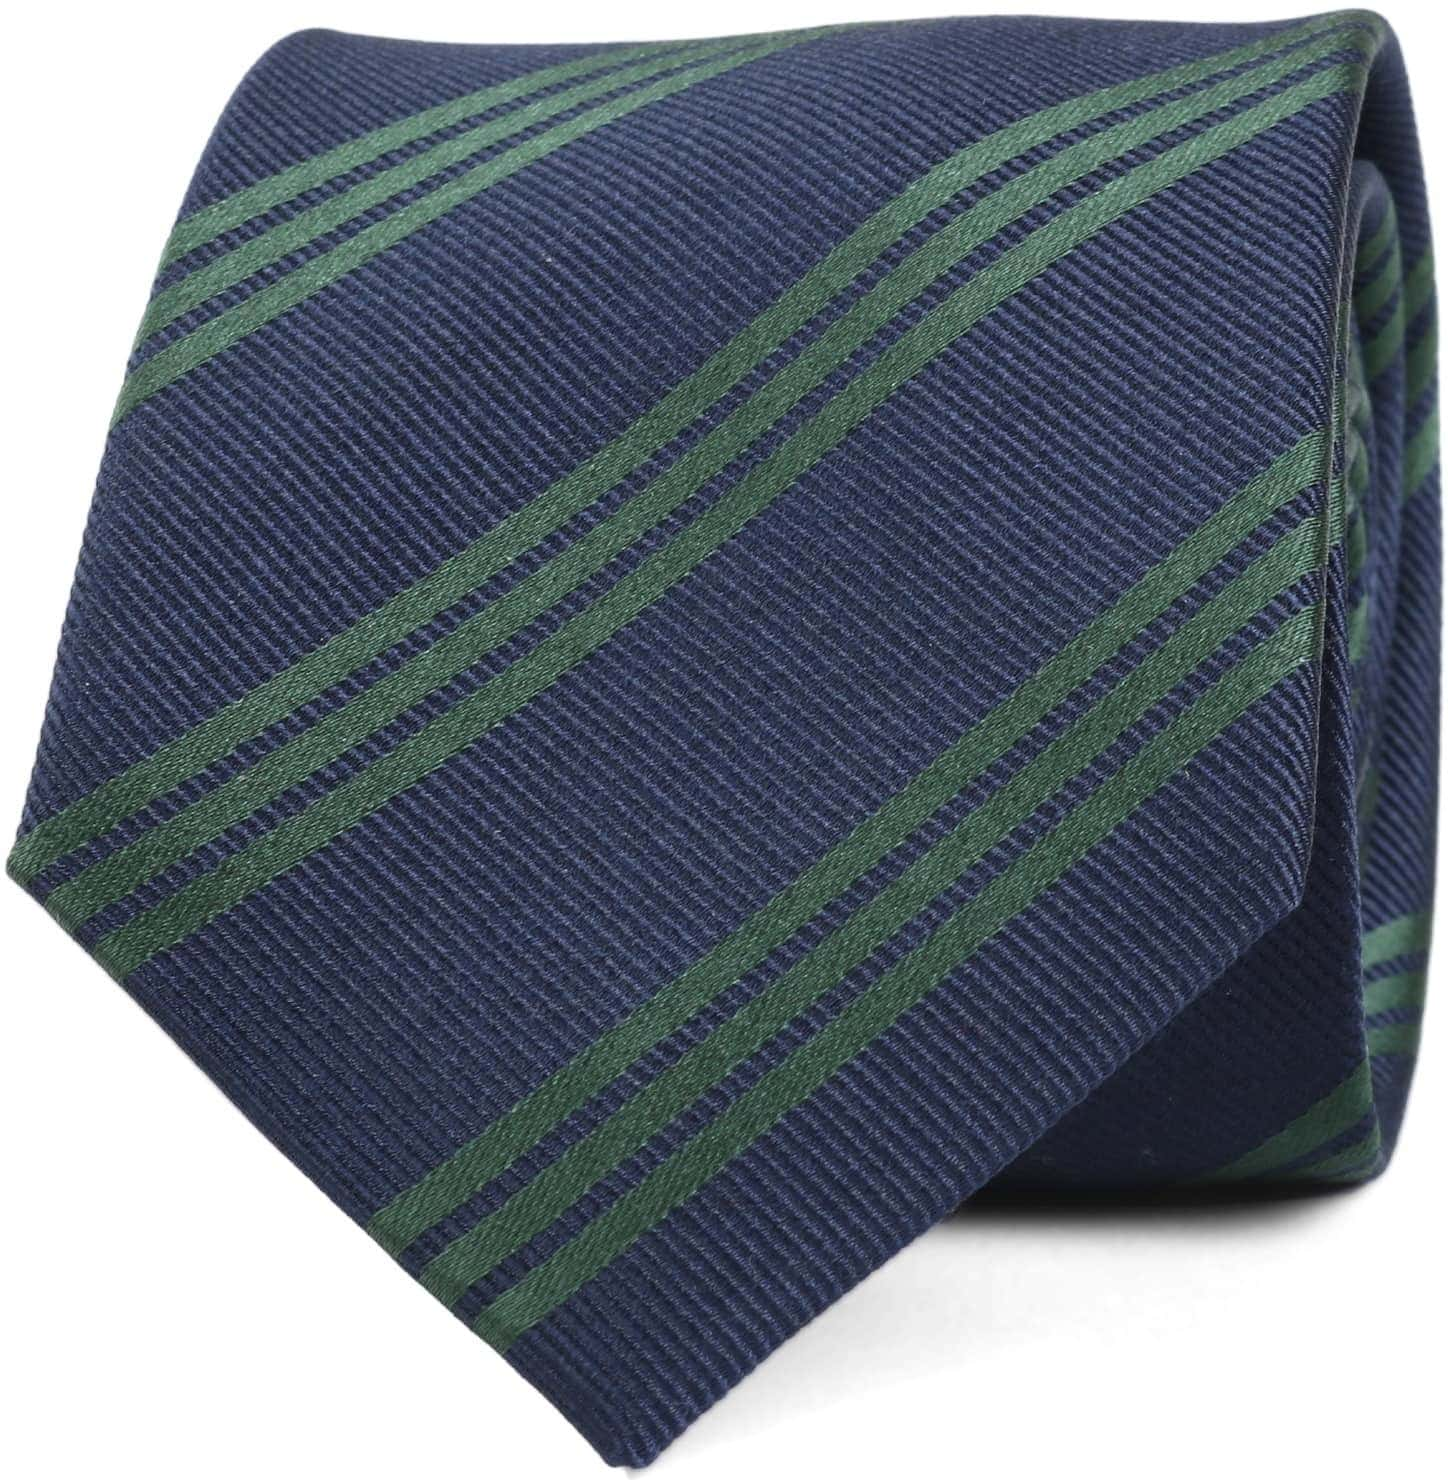 aaa91c12b920 Tie Silk Dark Navy Green Stripes 72 720003 1 Order Suitable